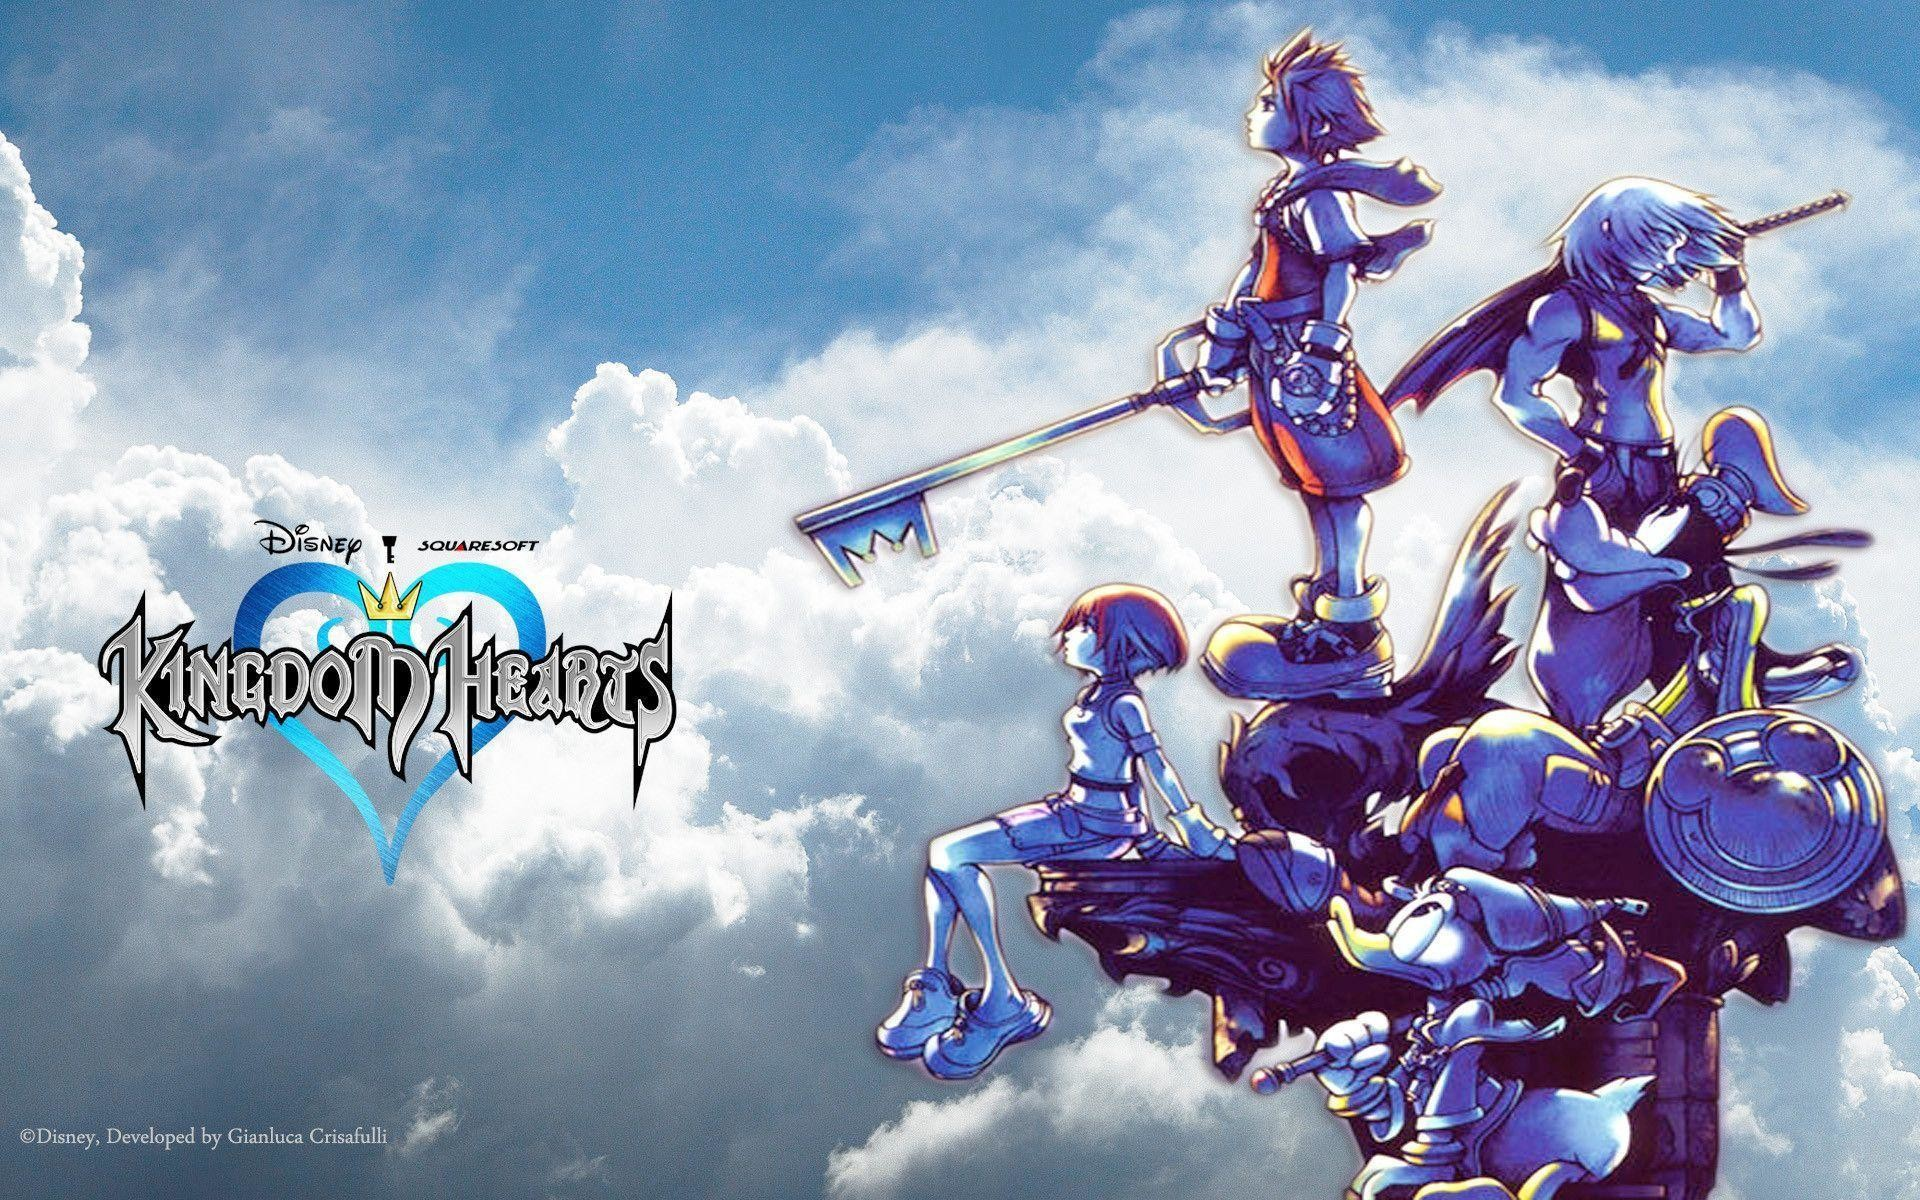 1920x1200 Kingdom Hearts Wallpapers - Full HD wallpaper search